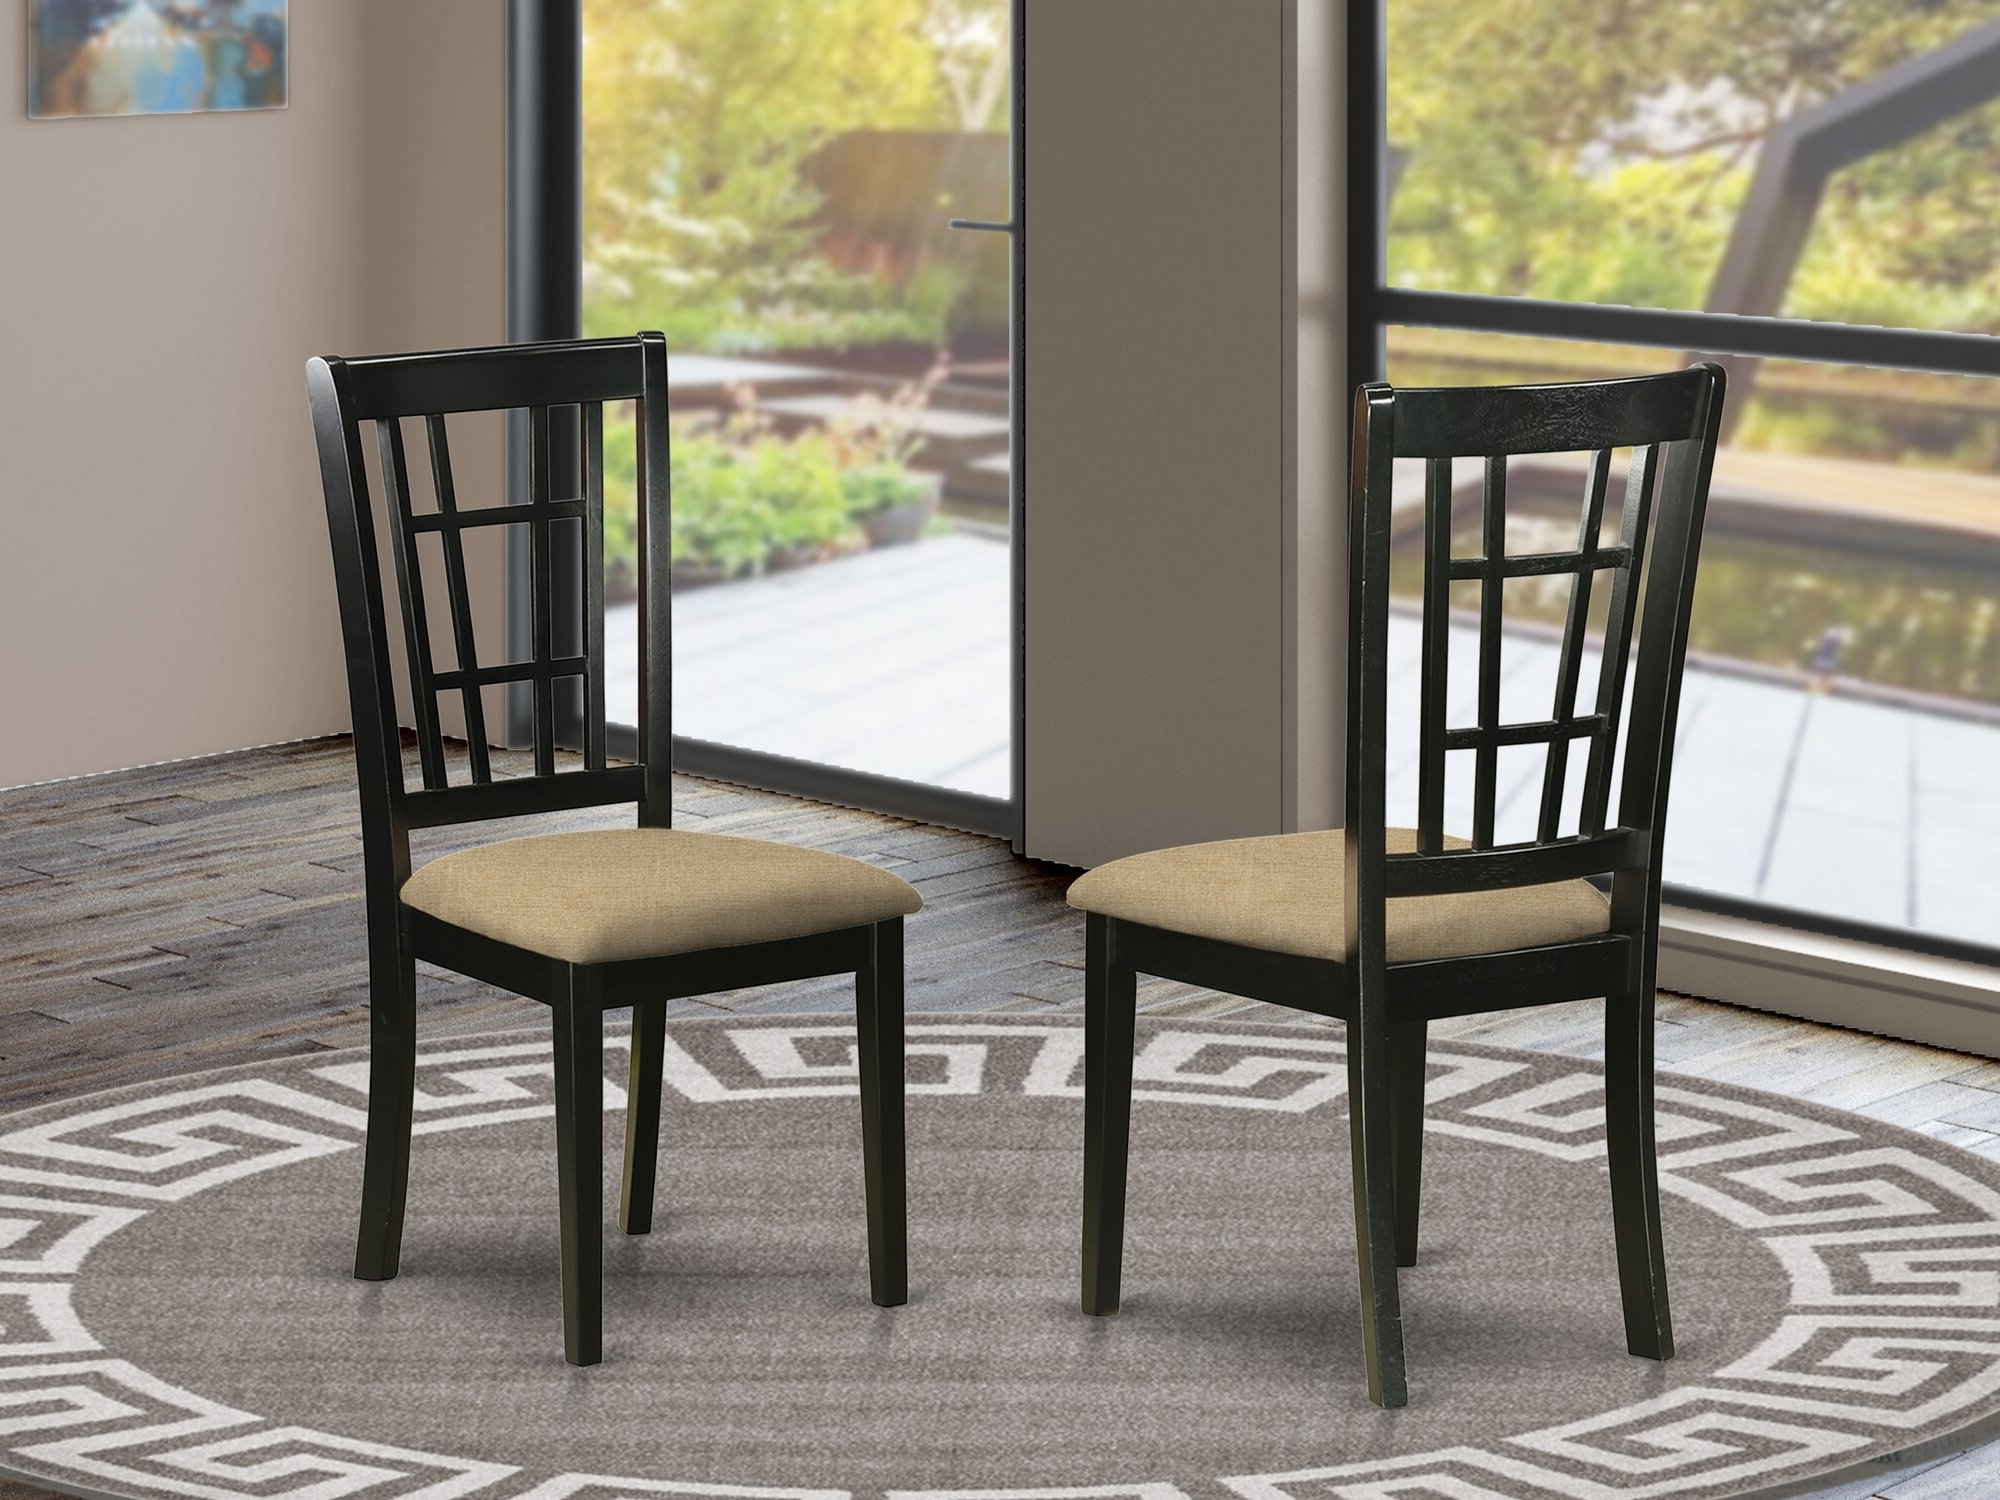 Coastal Upholstered Kitchen & Dining Chairs You'll Love In With Regard To 2019 Bob Stripe Upholstered Dining Chairs (set Of 2) (View 6 of 20)